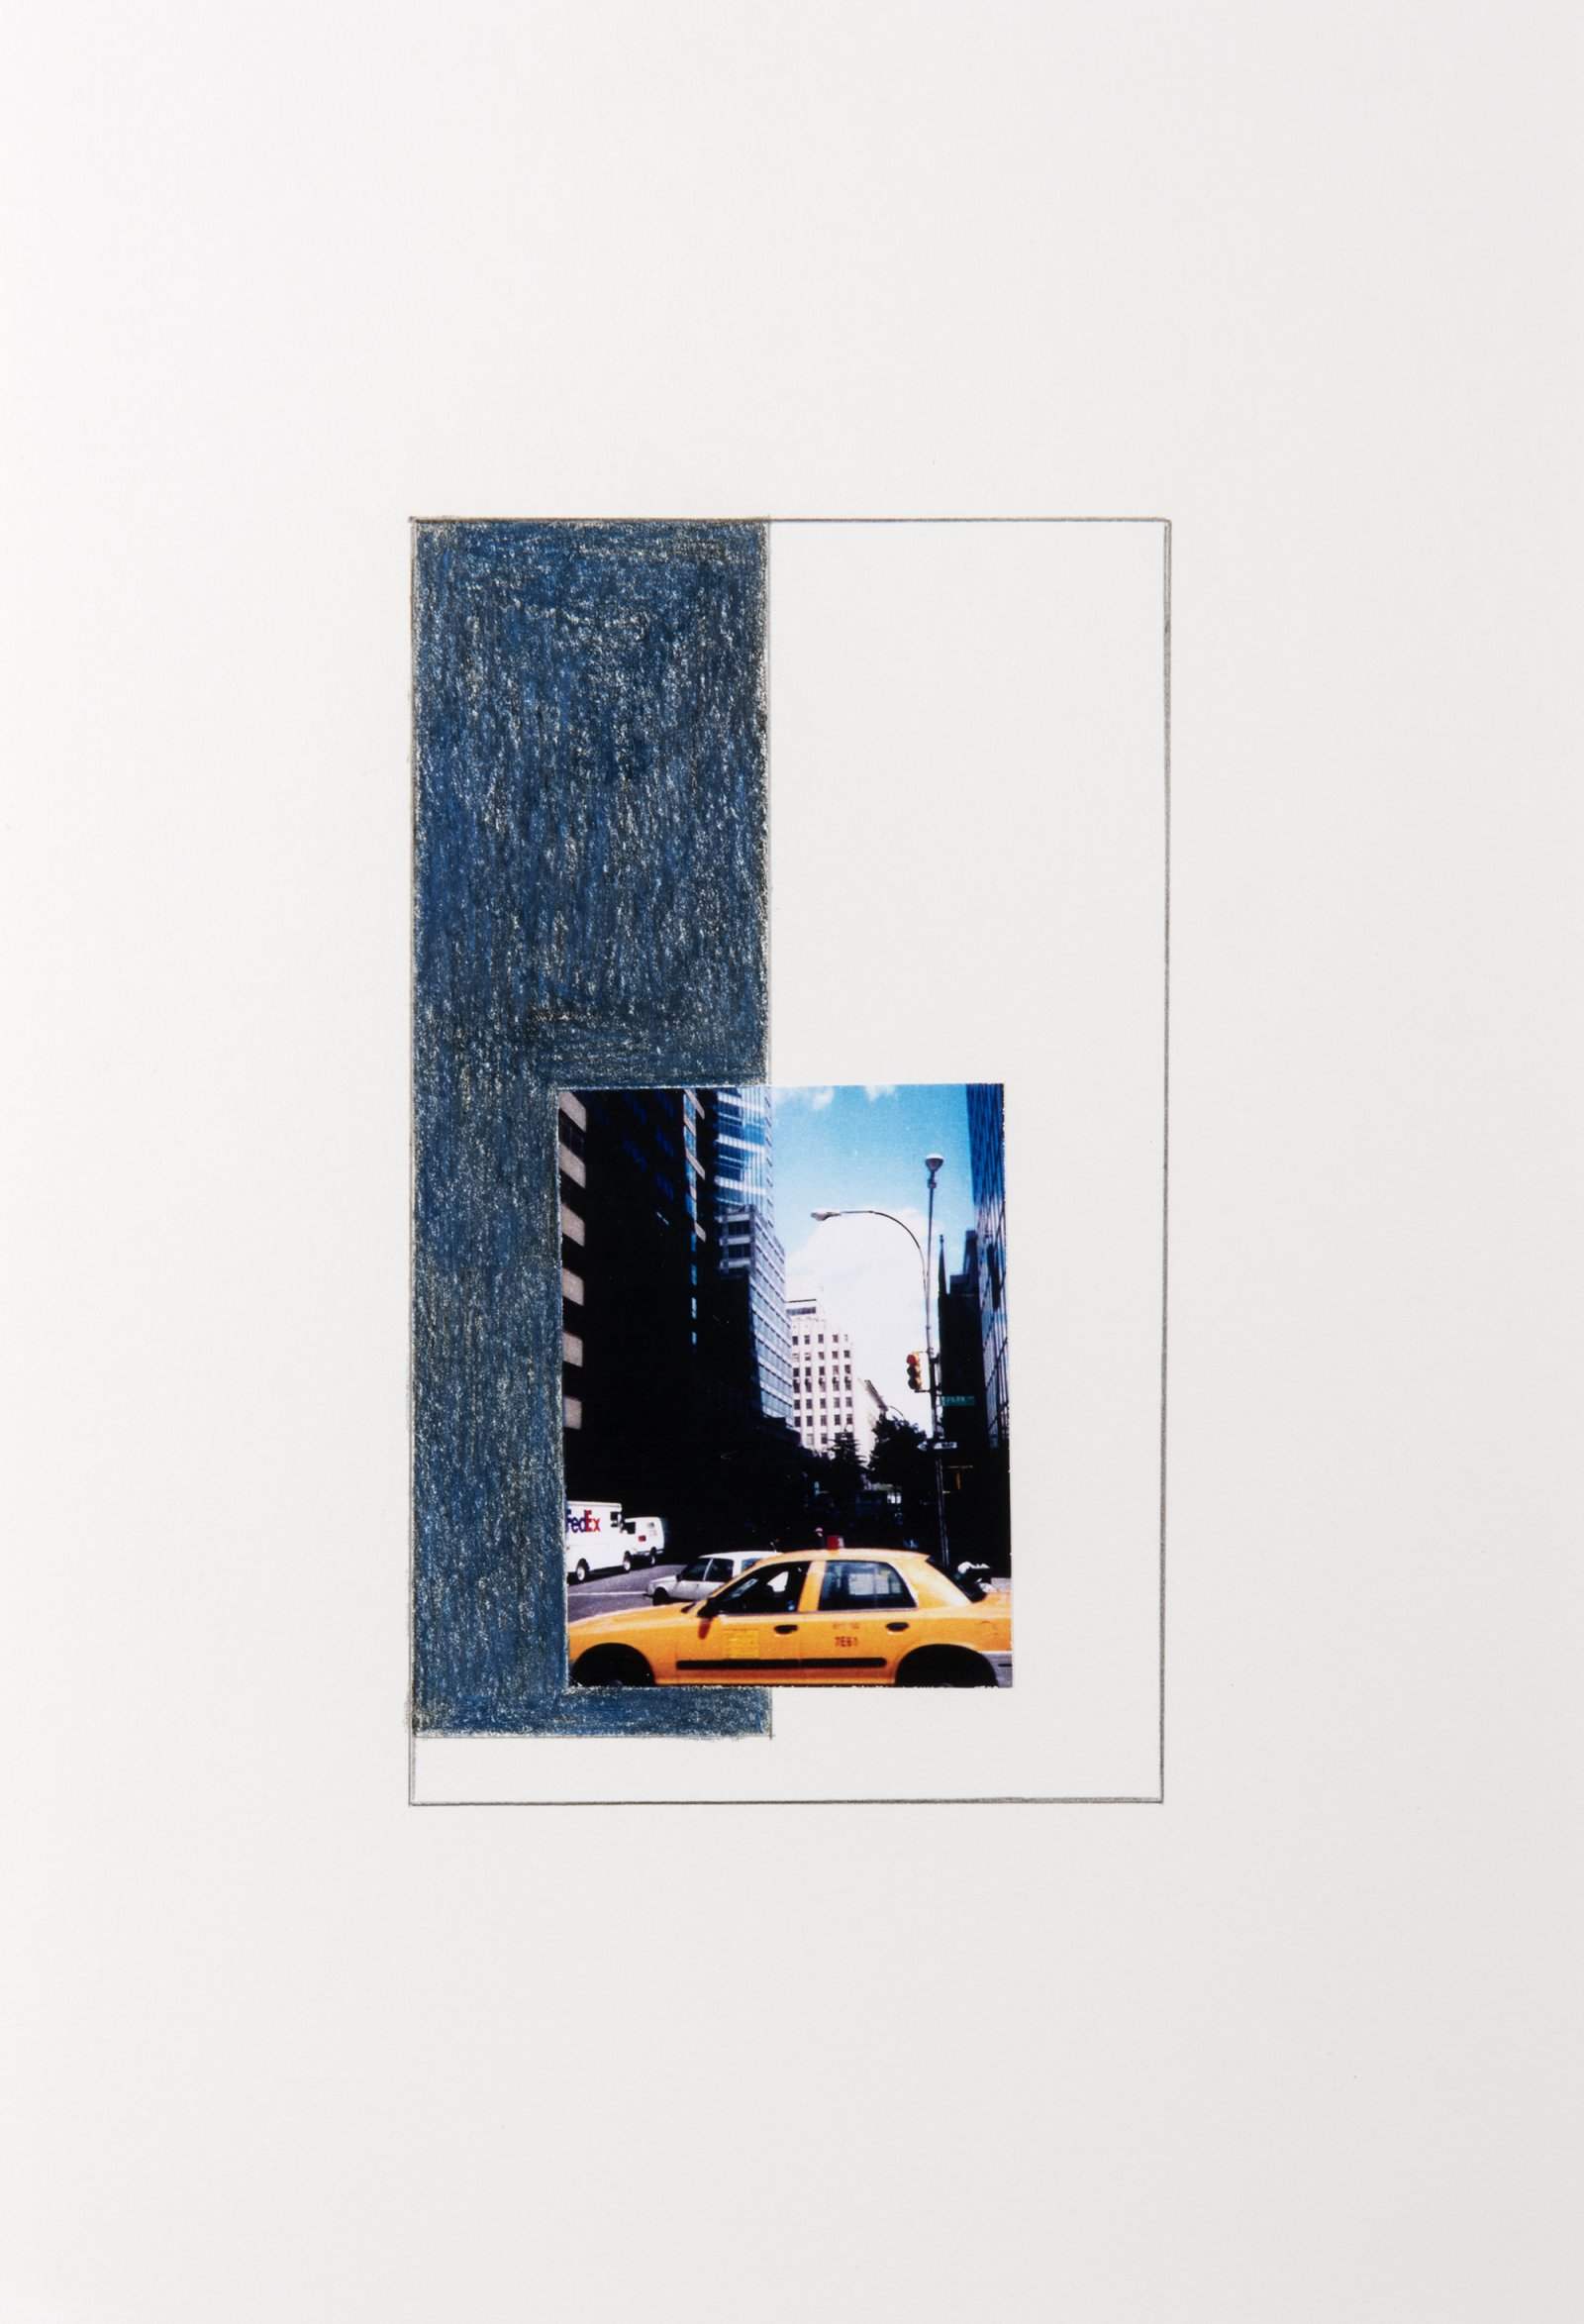 Ian Wallace, New York Series Studies, 2001, photocopy with pencil on paper,11 x 7 in. (28 x 18 cm)